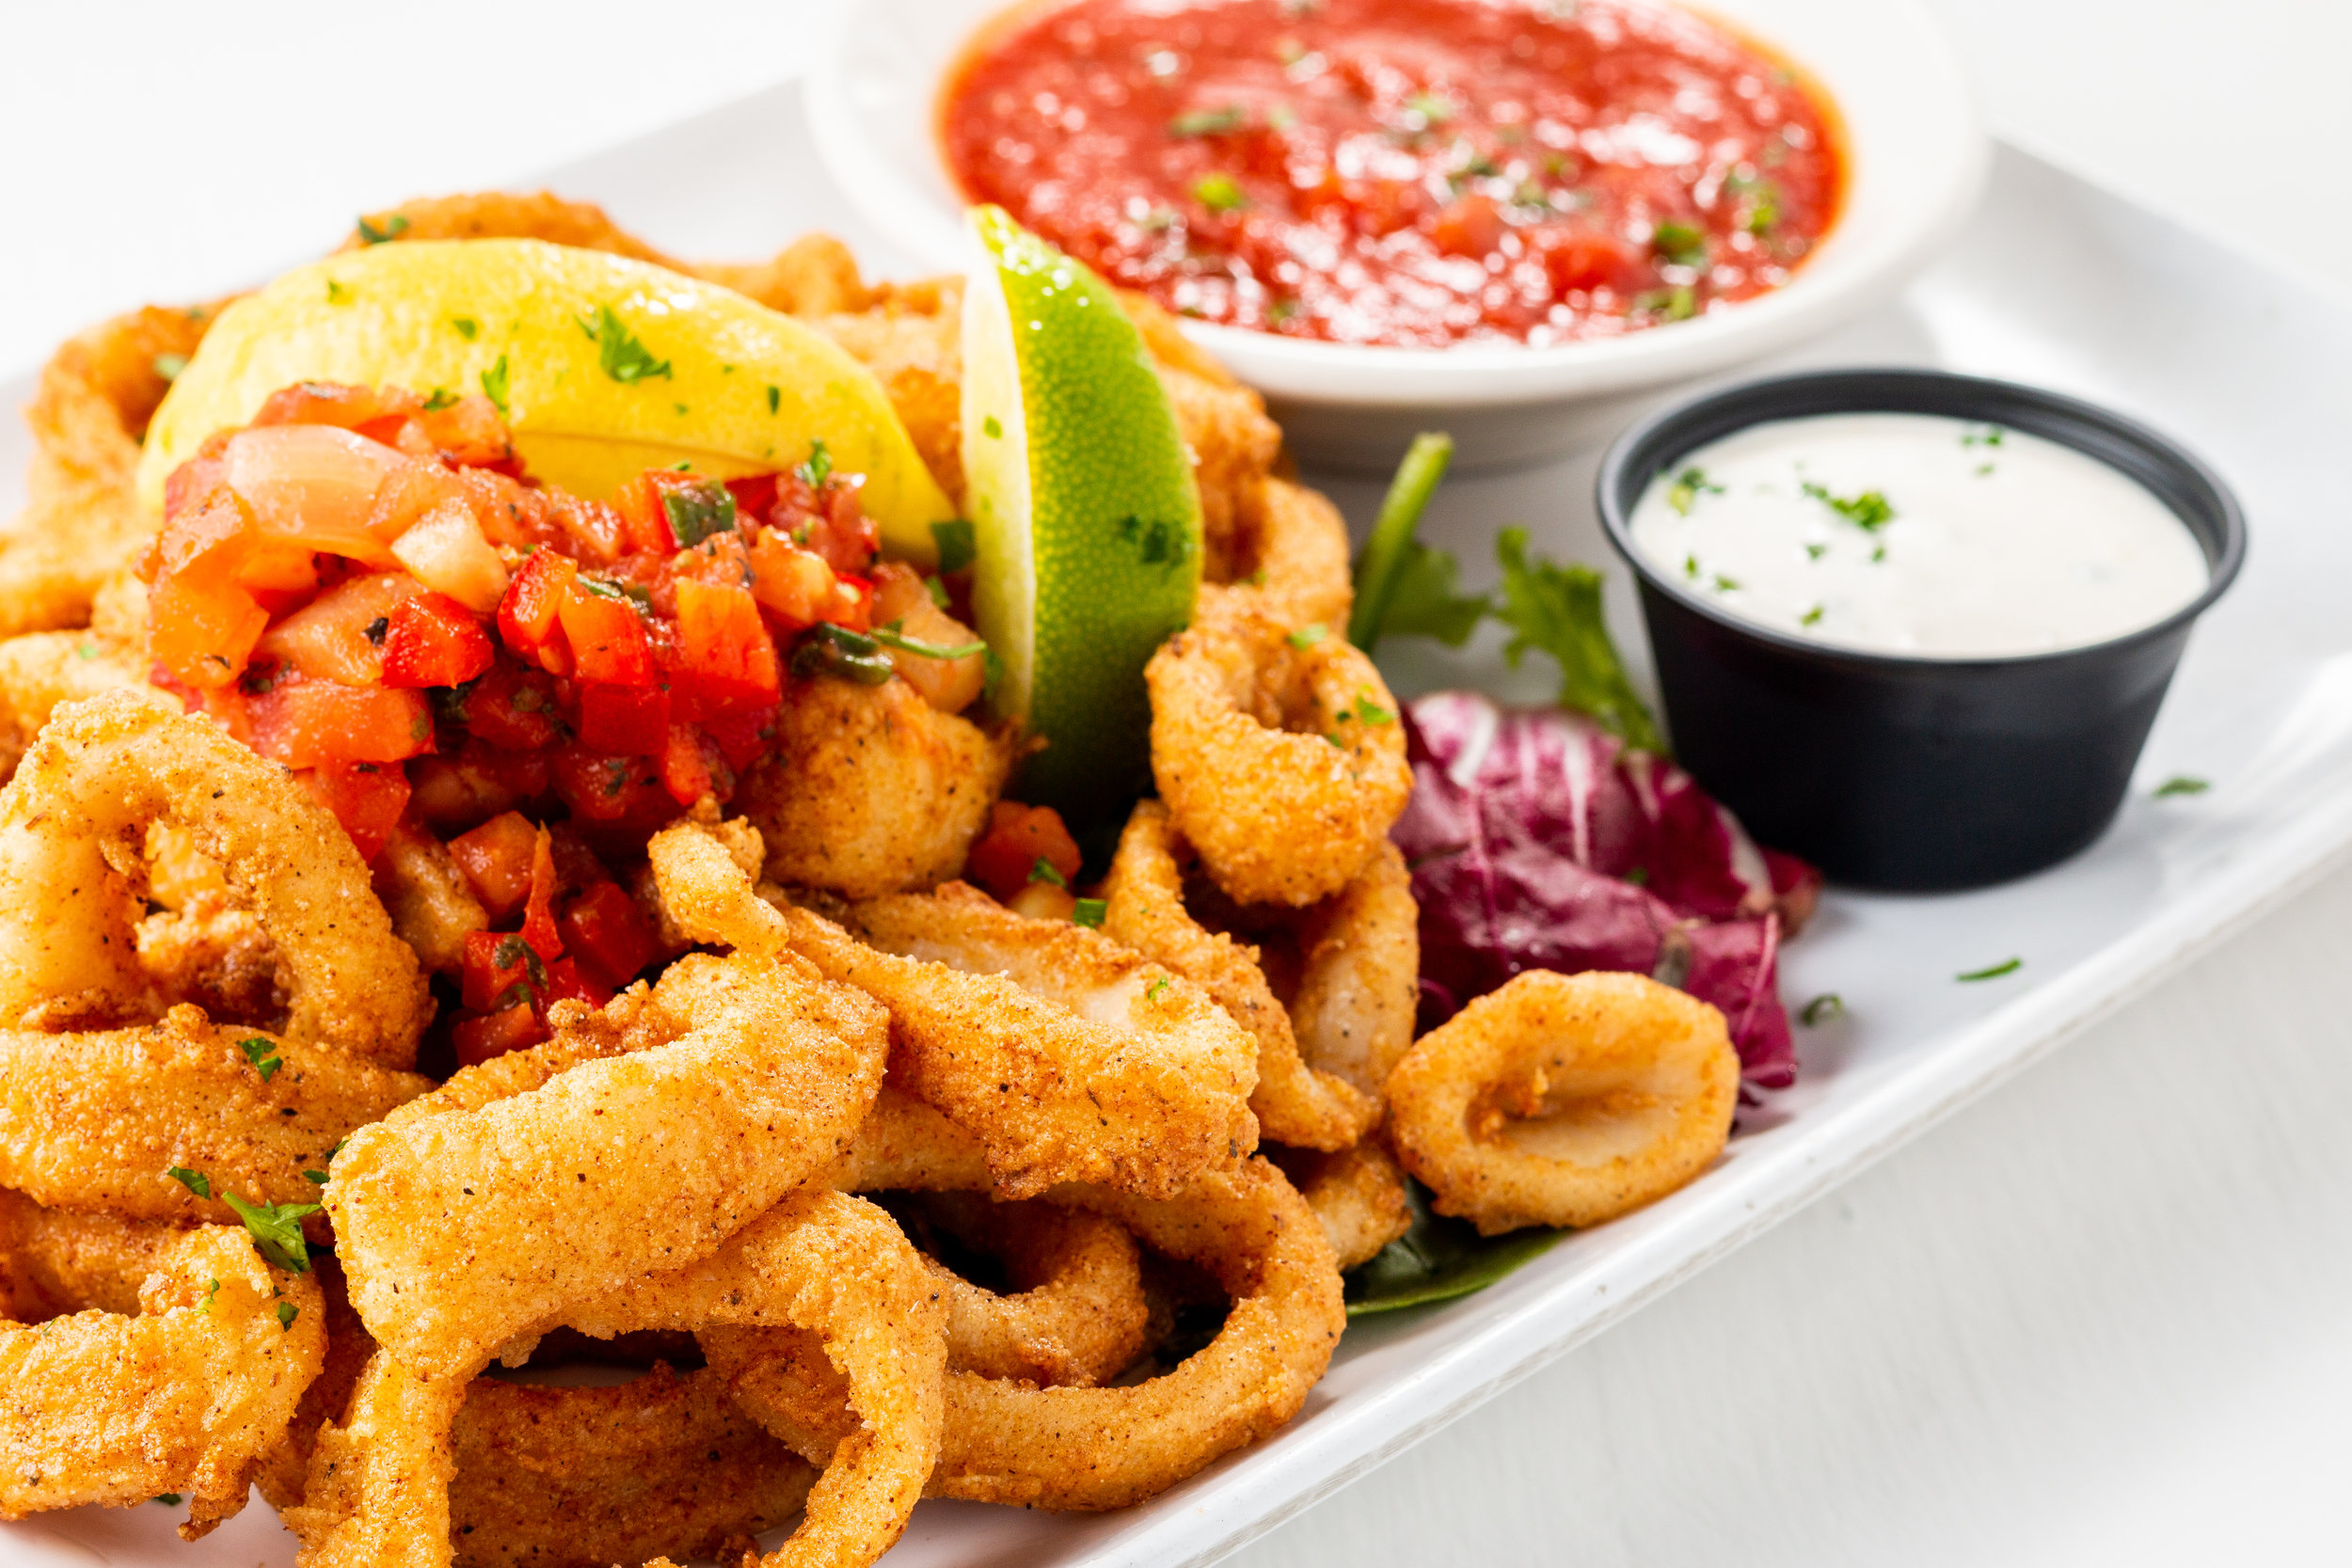 CAJUN LIME CALAMARI - Served crisp, red pepper salsa, cool citrus remoulade